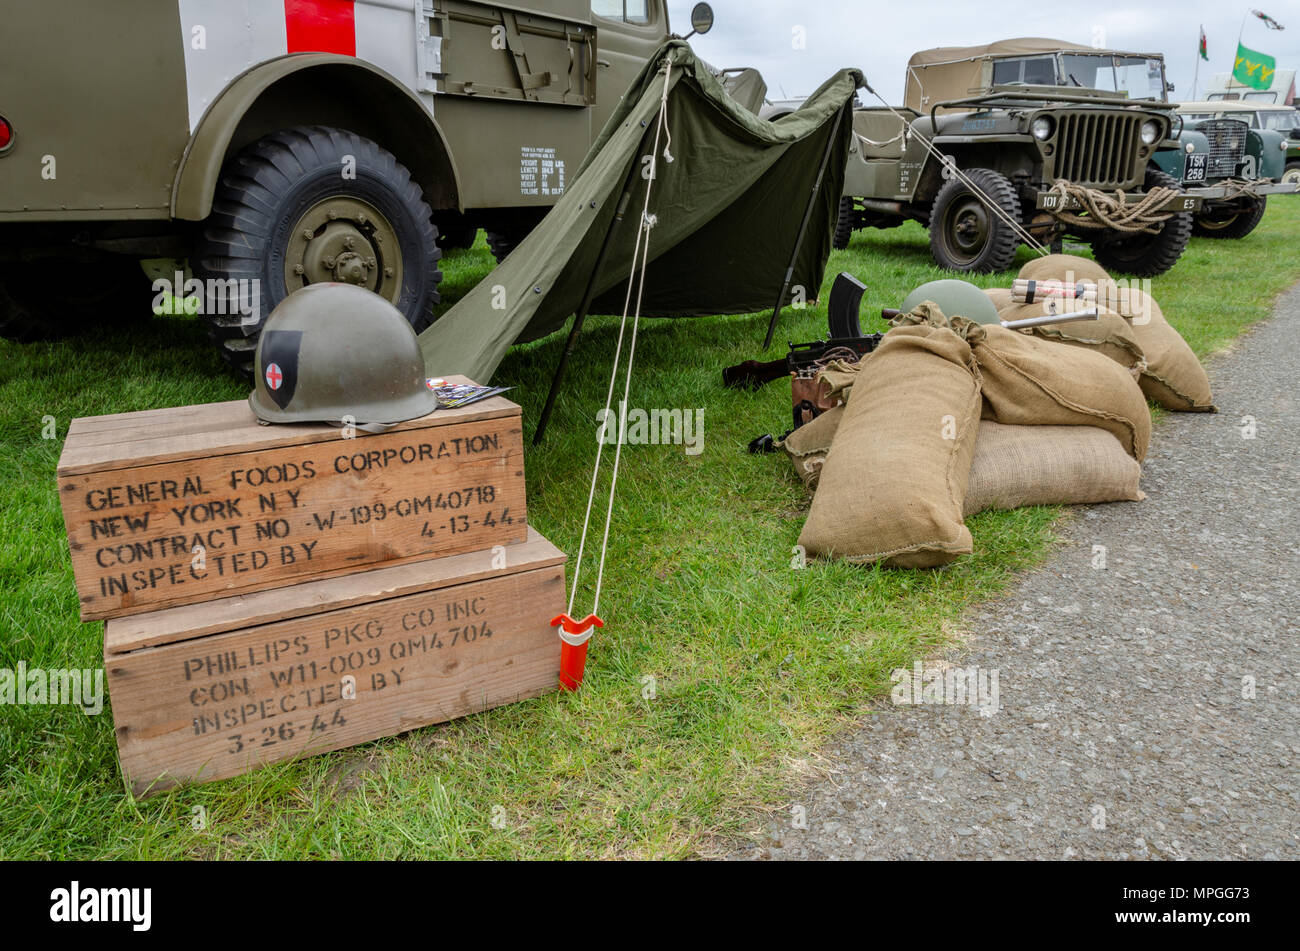 Anglesey, UK: Feb 20, 2018: Military themed display at the Anglesey Vintage  Rally